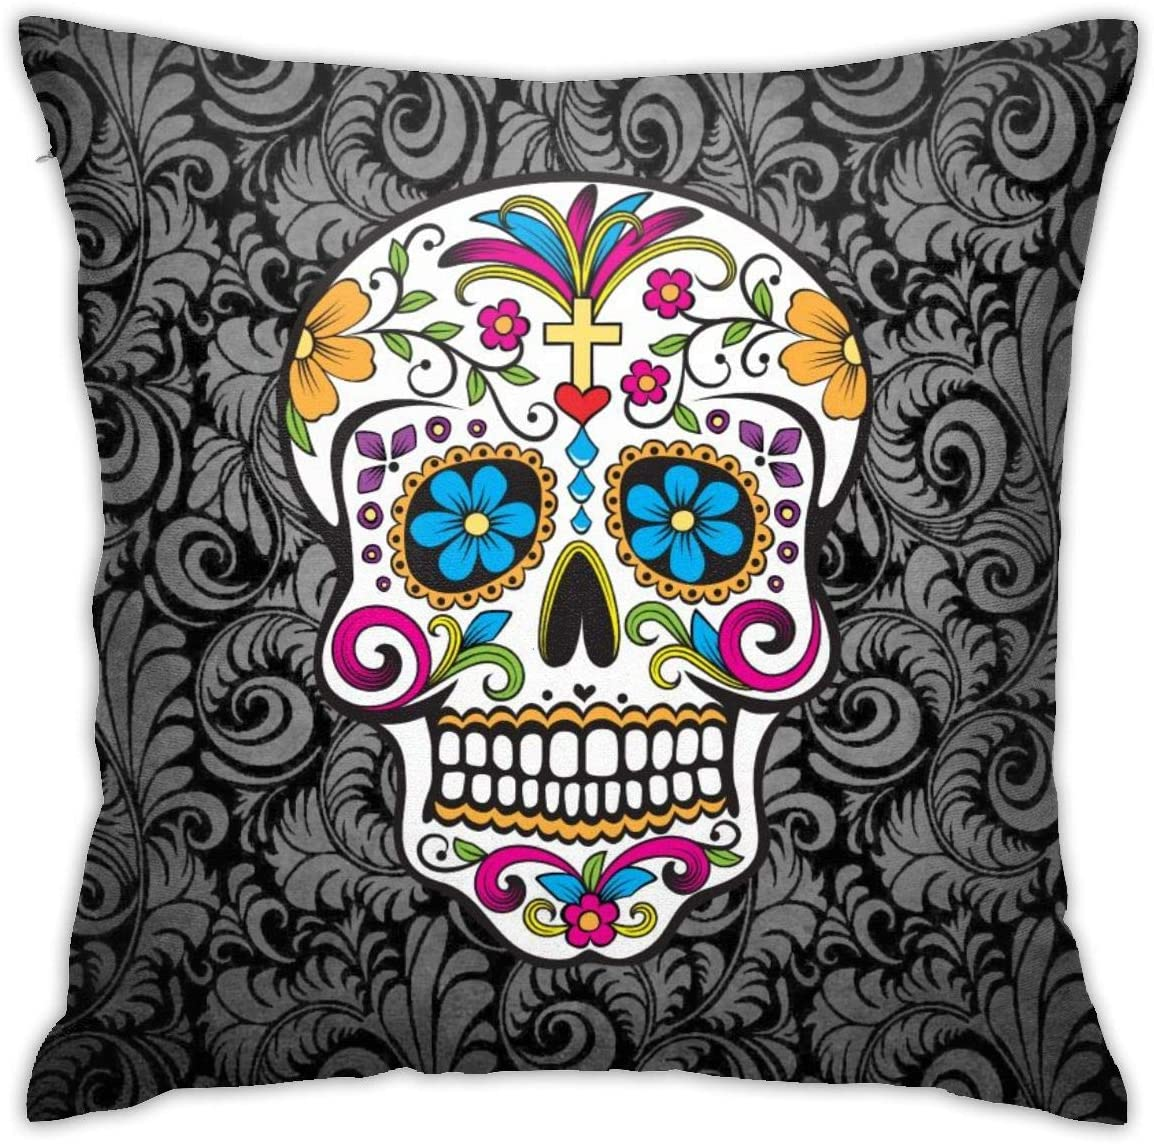 Cartoon Skull Colorful Pattern Throw Pillow Covers Decorative 18x18 Inch Pillowcase Square Cushion Cases for Home Sofa Bedroom Livingroom